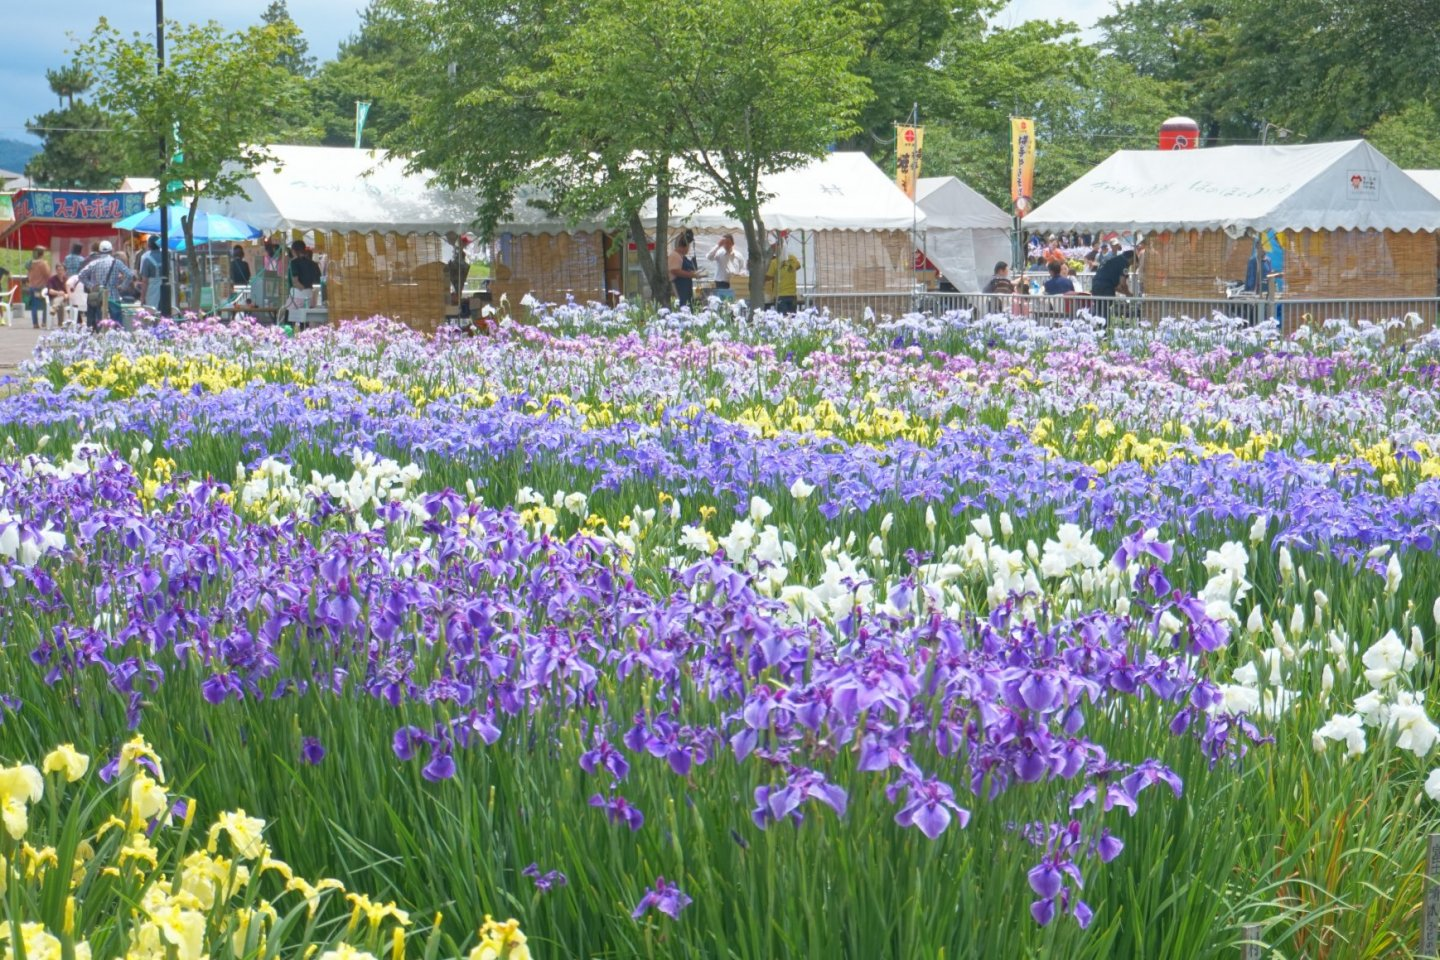 The park is home to around 600,000 irises in bloom